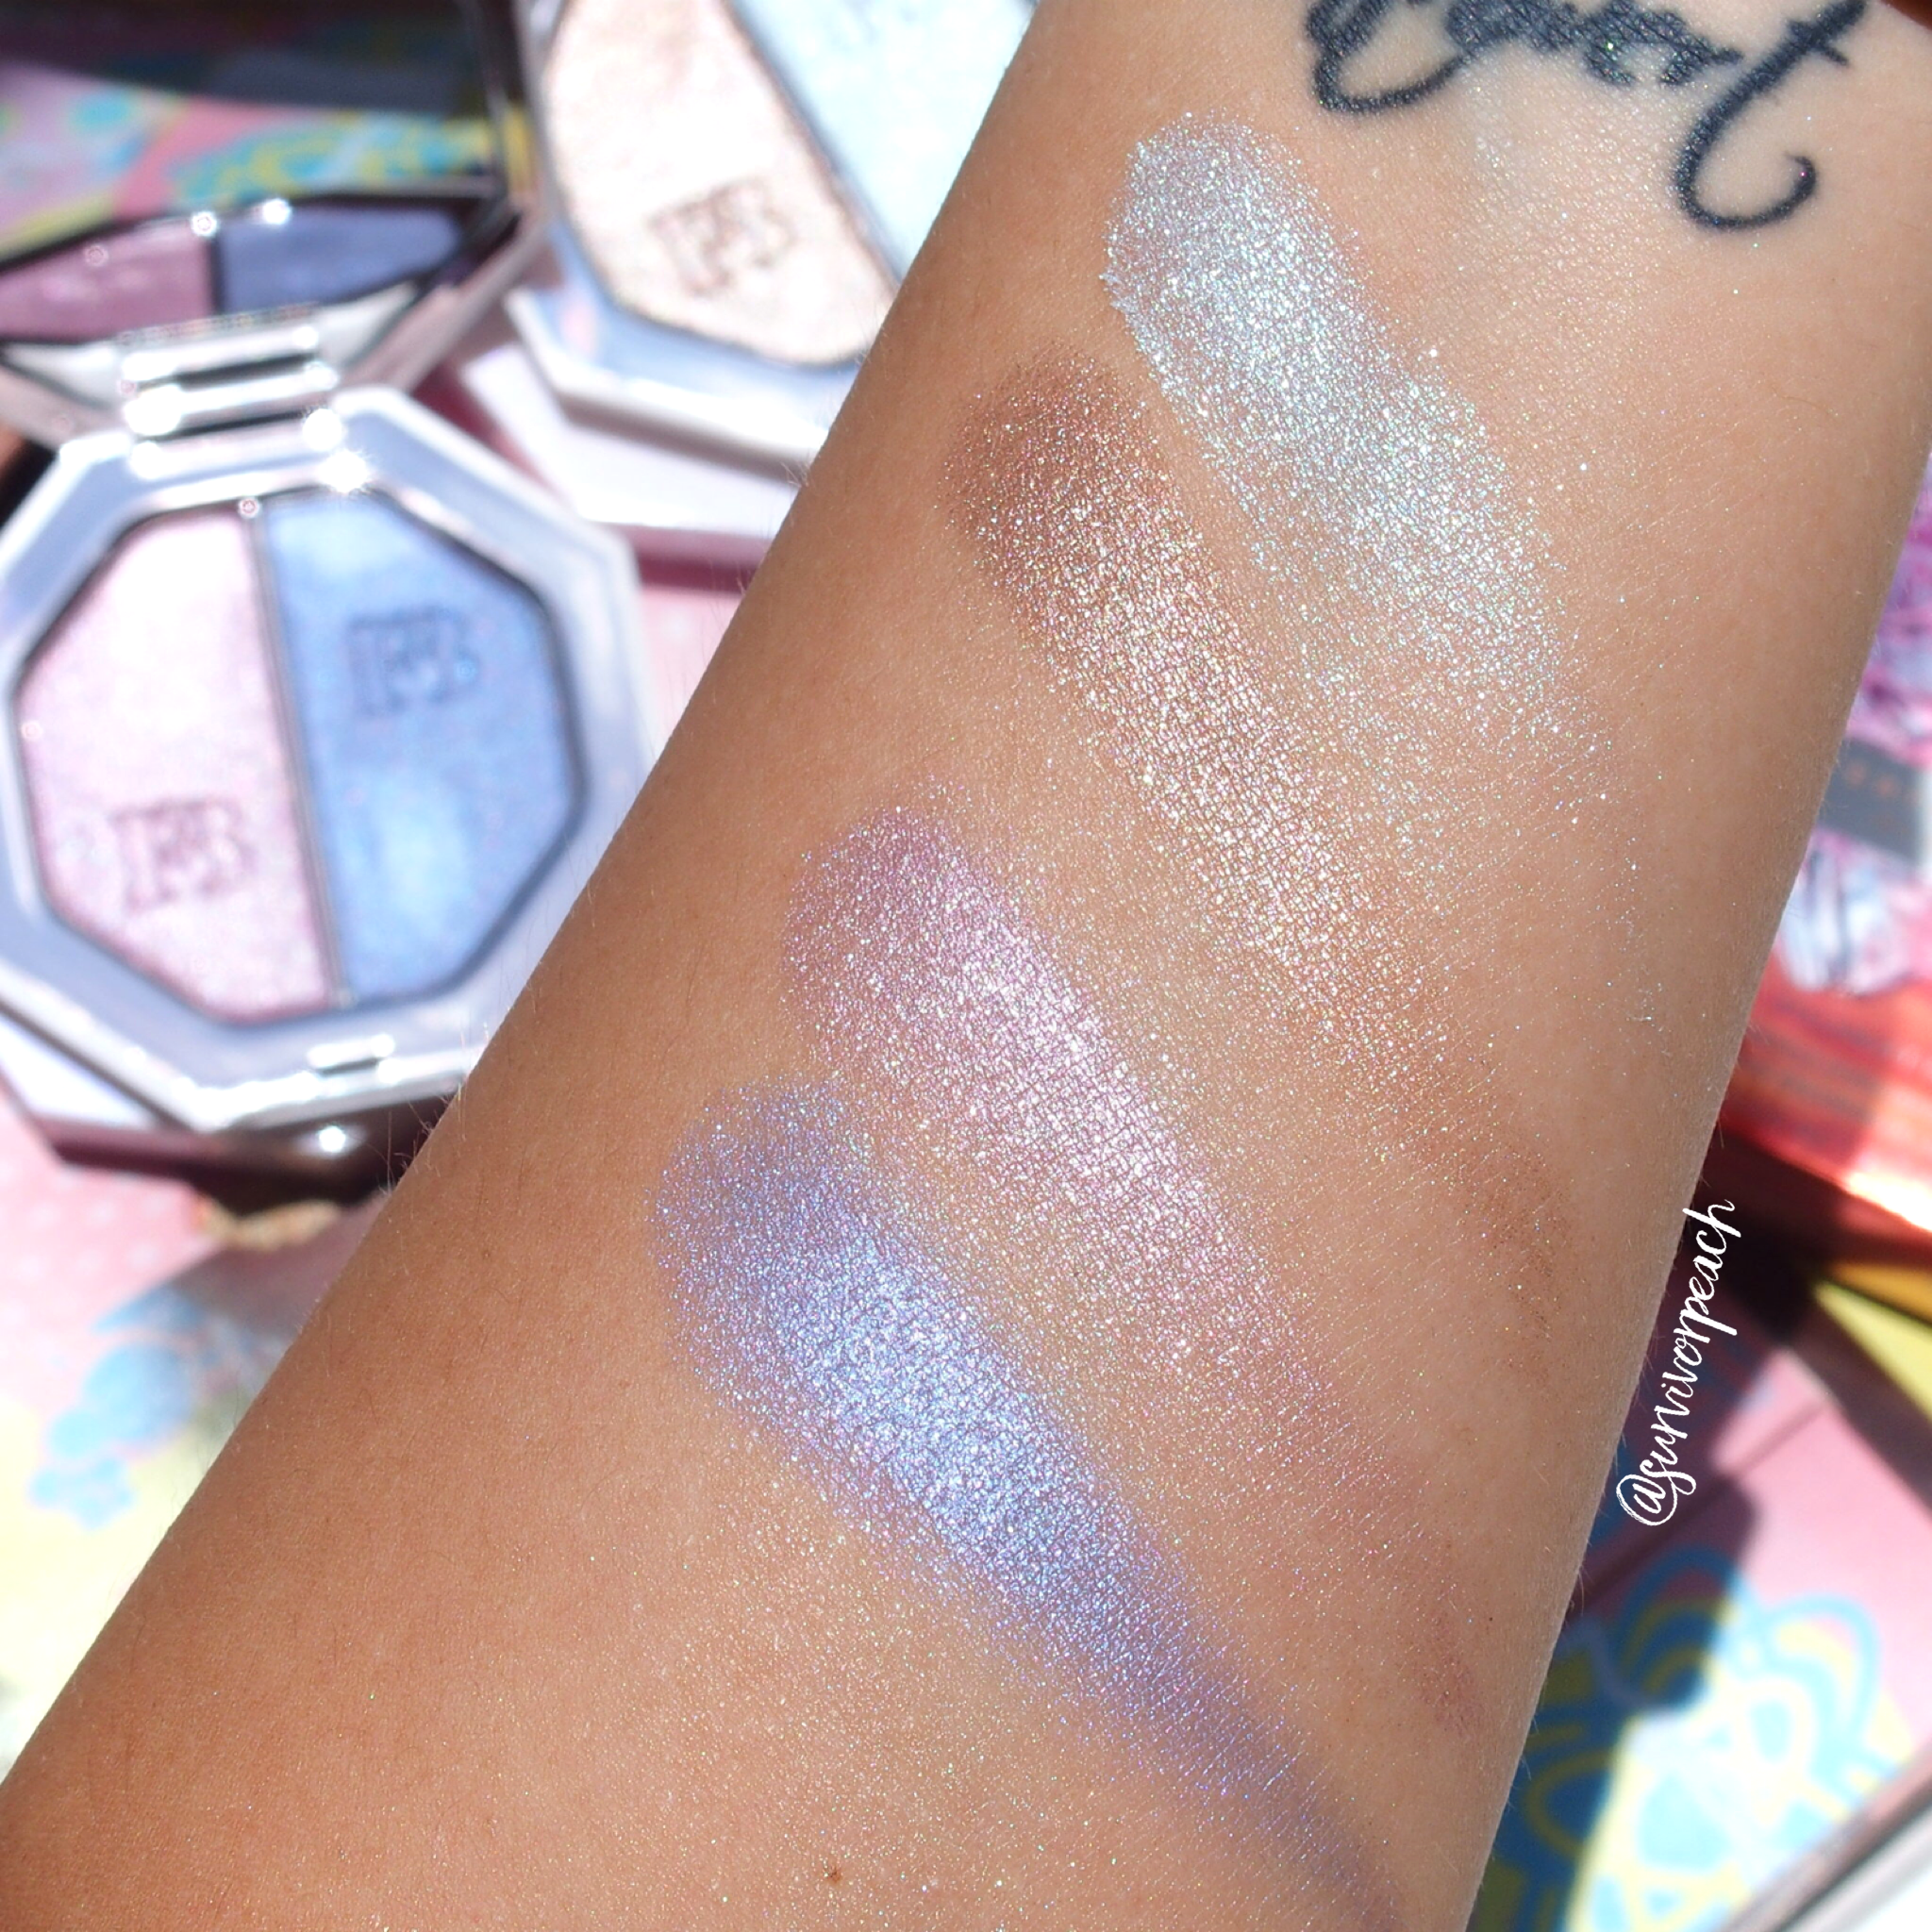 Swatches of Fenty Beauty Killawatt Foil HIghlighter Duo Sand Castle/Mint'd Mojito and 7Daywknd/Poolside